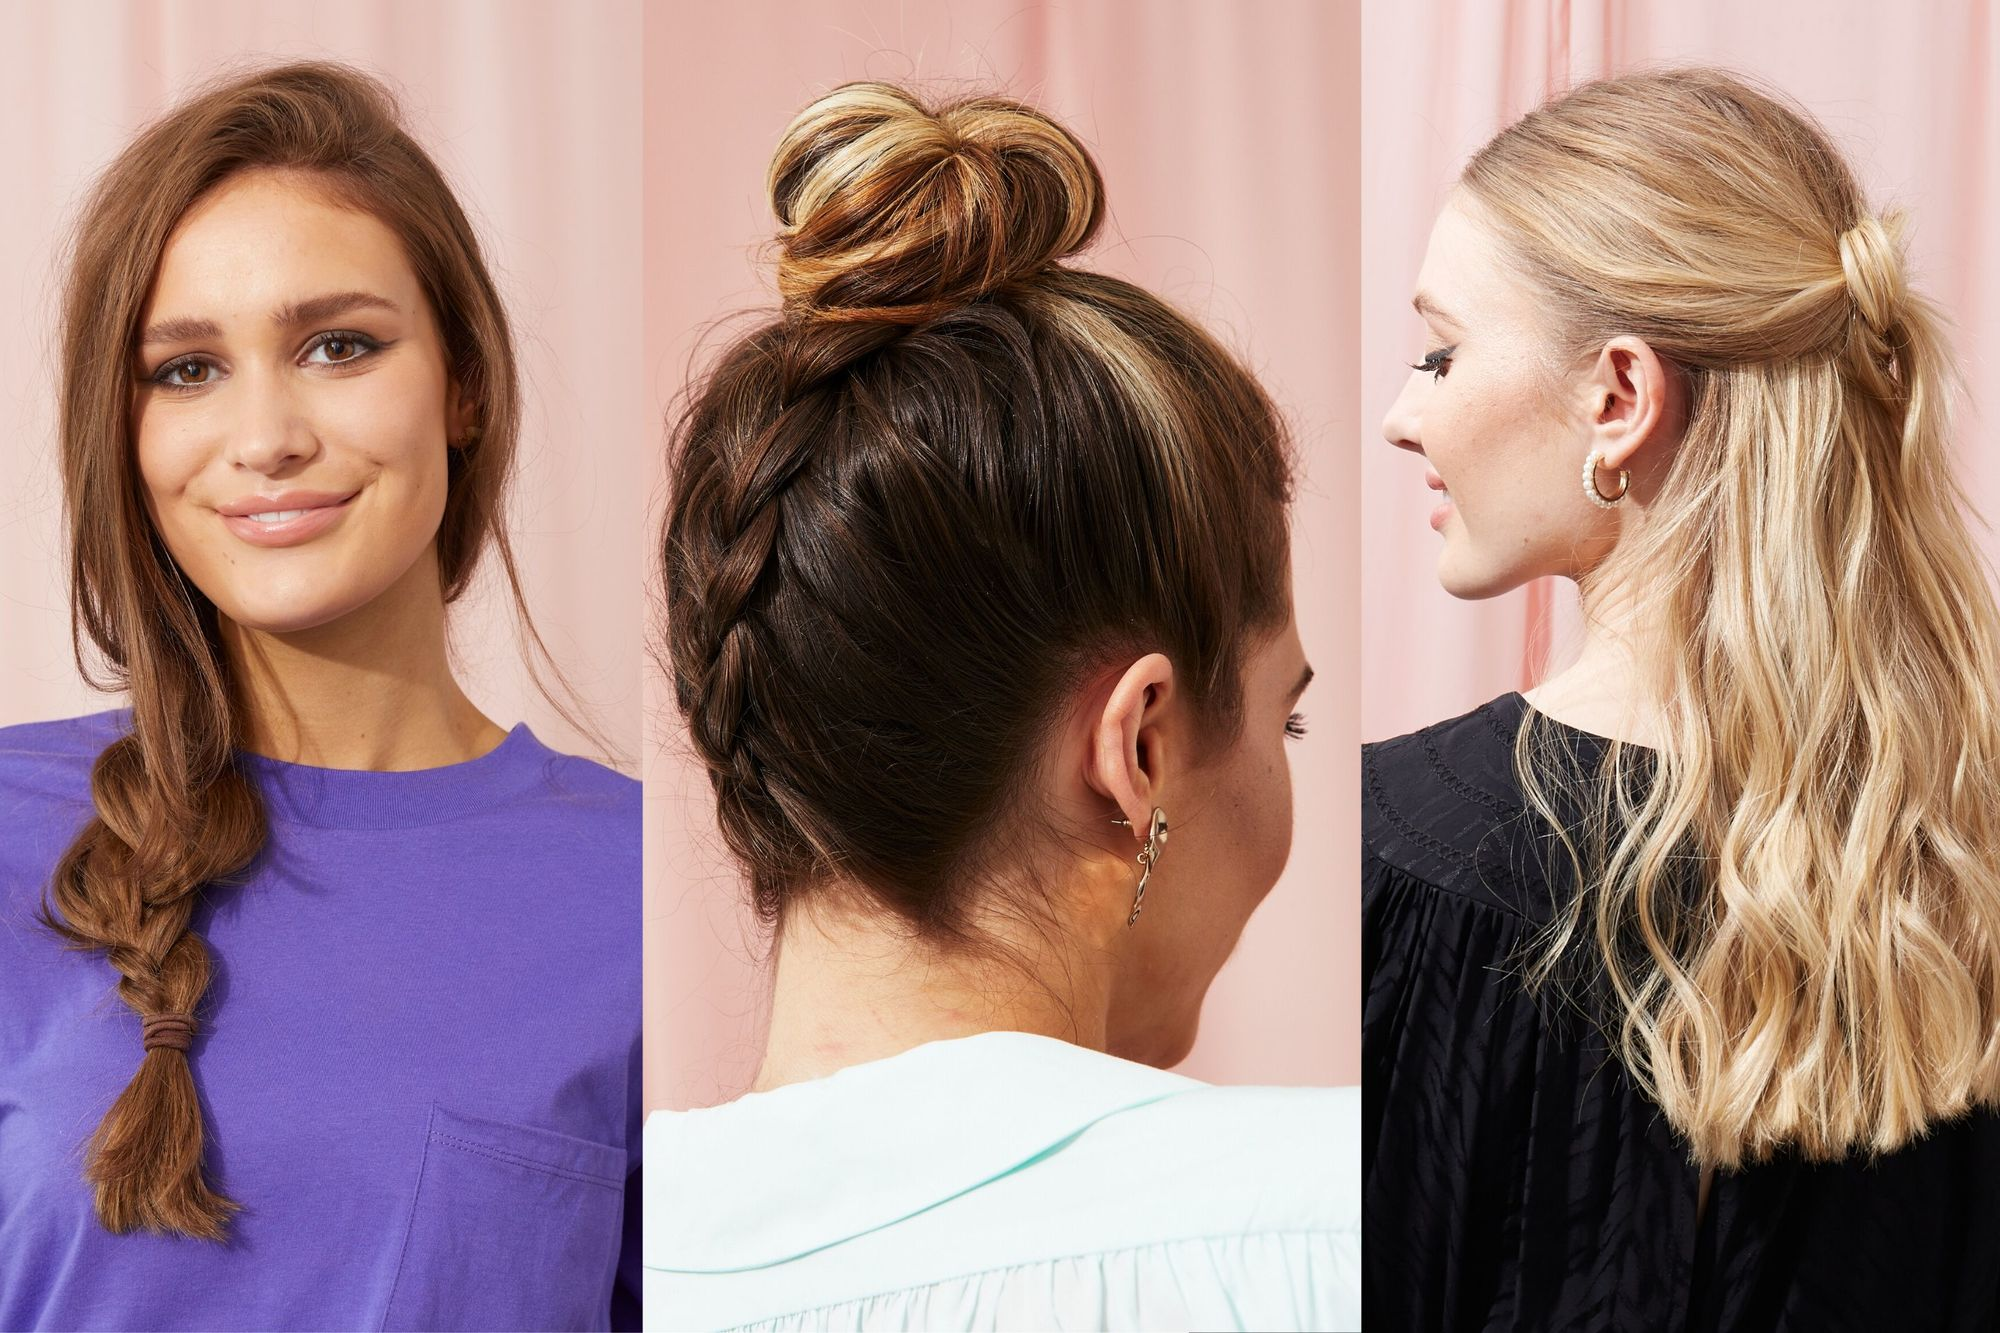 11 Easy Hairstyles That Take 11 Minutes or Less To Achieve